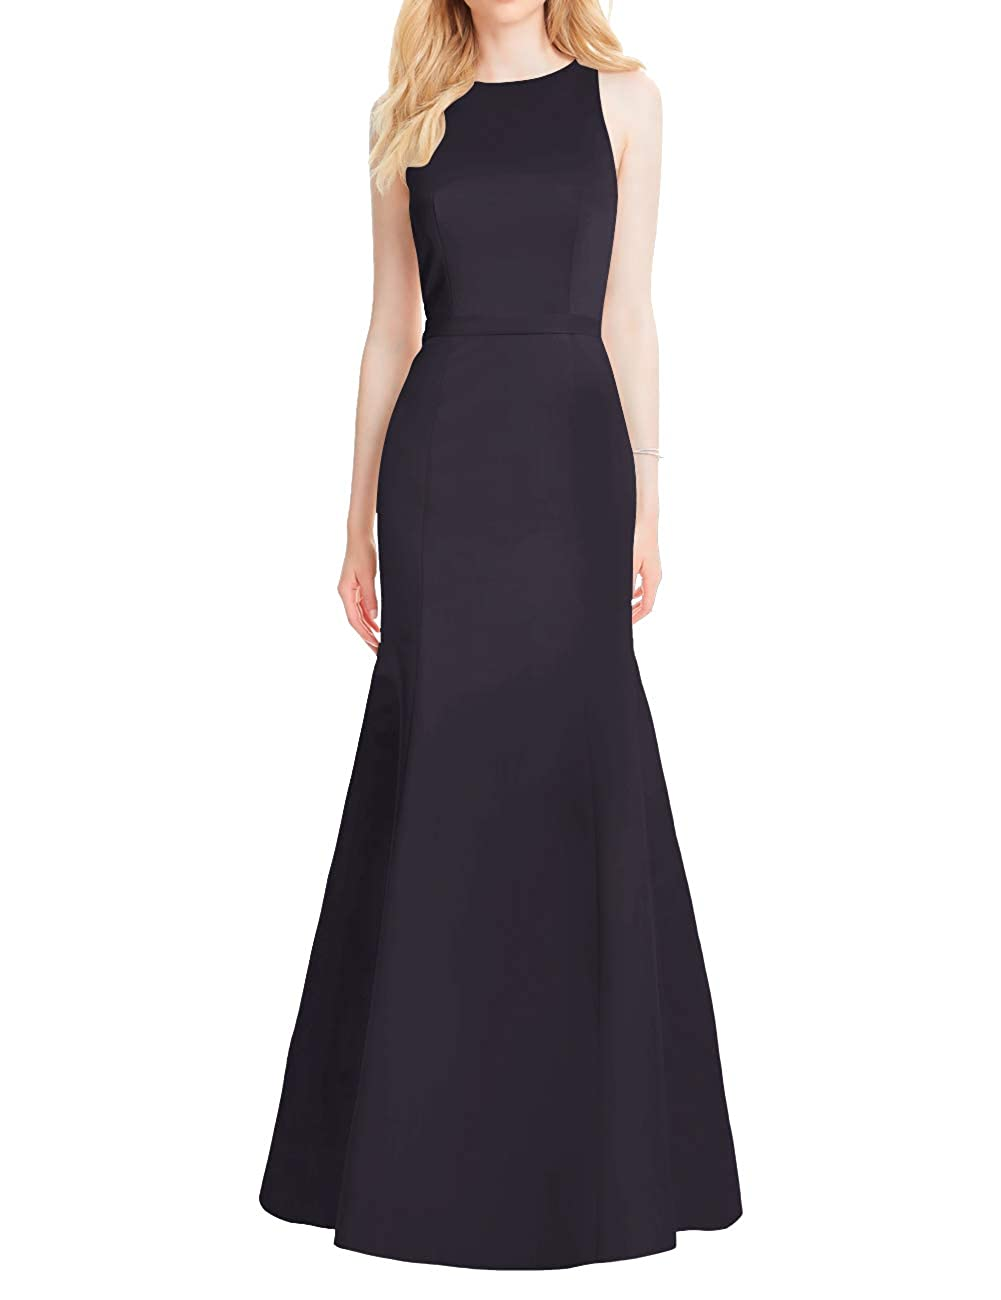 Navy Mermaid Prom Dresses Long Satin Evening Formal Gowns Backless Maxi Party Dress